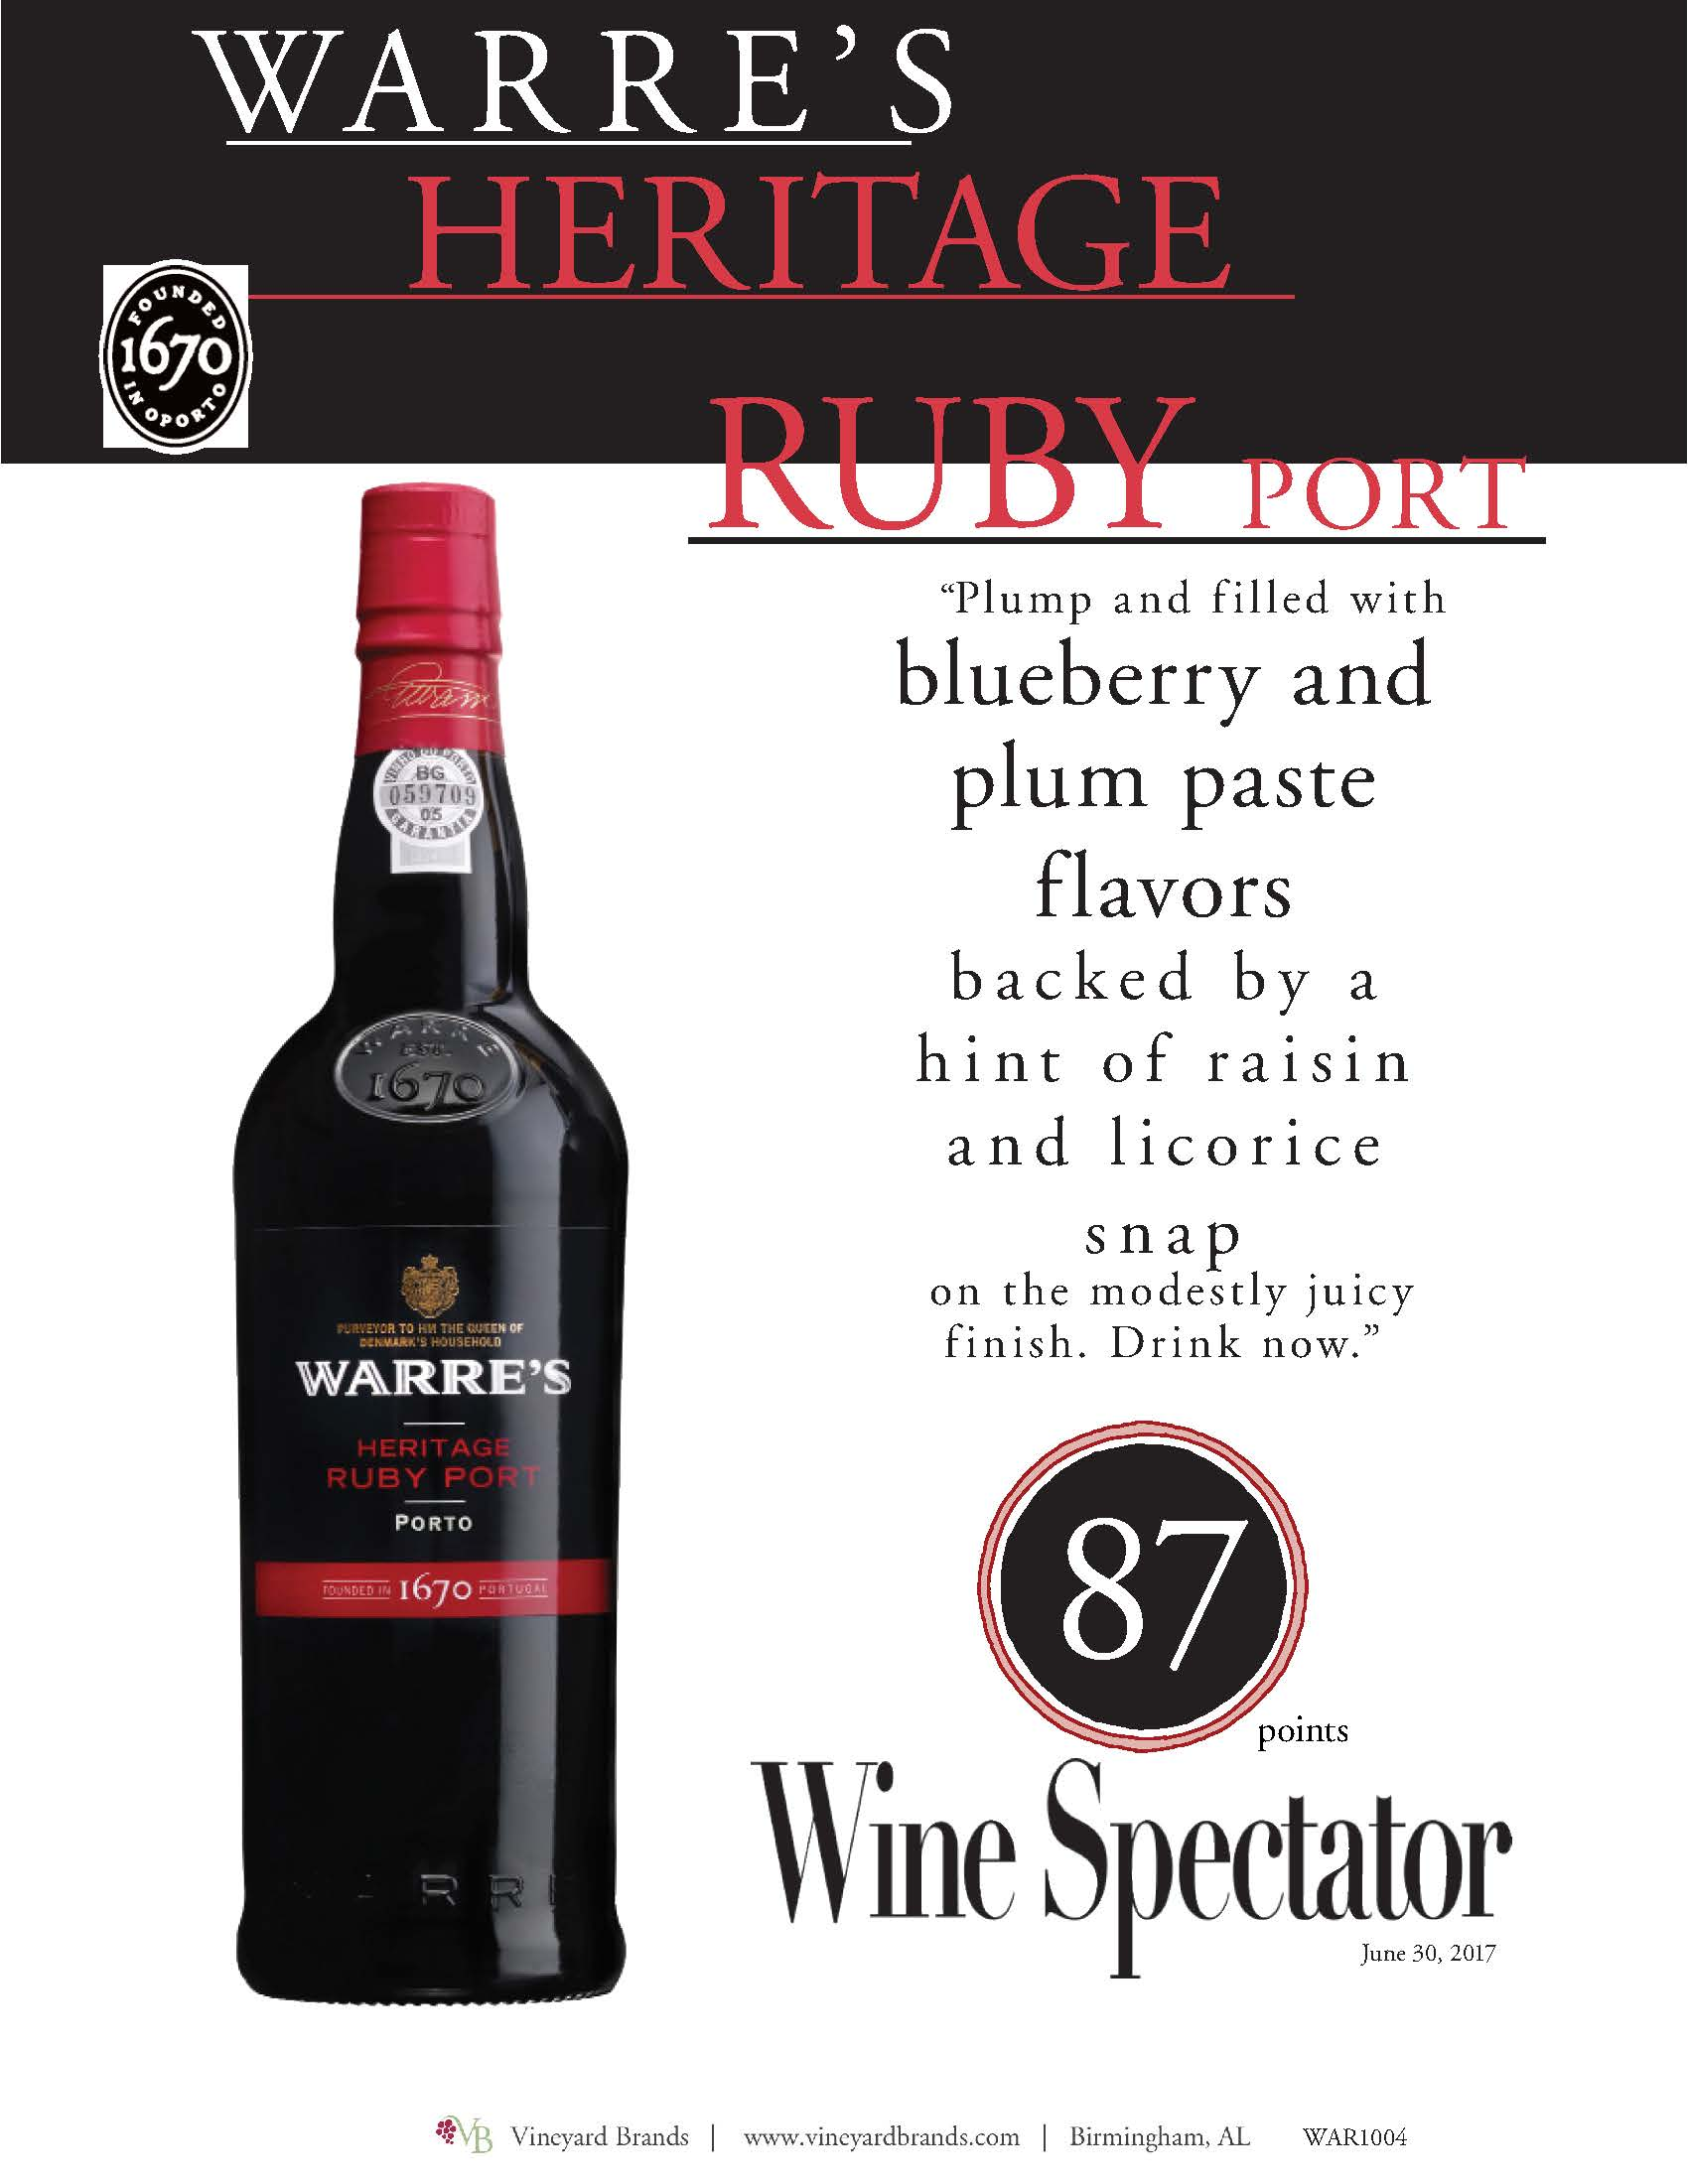 Warre's Heritage Ruby Port Wine .jpg